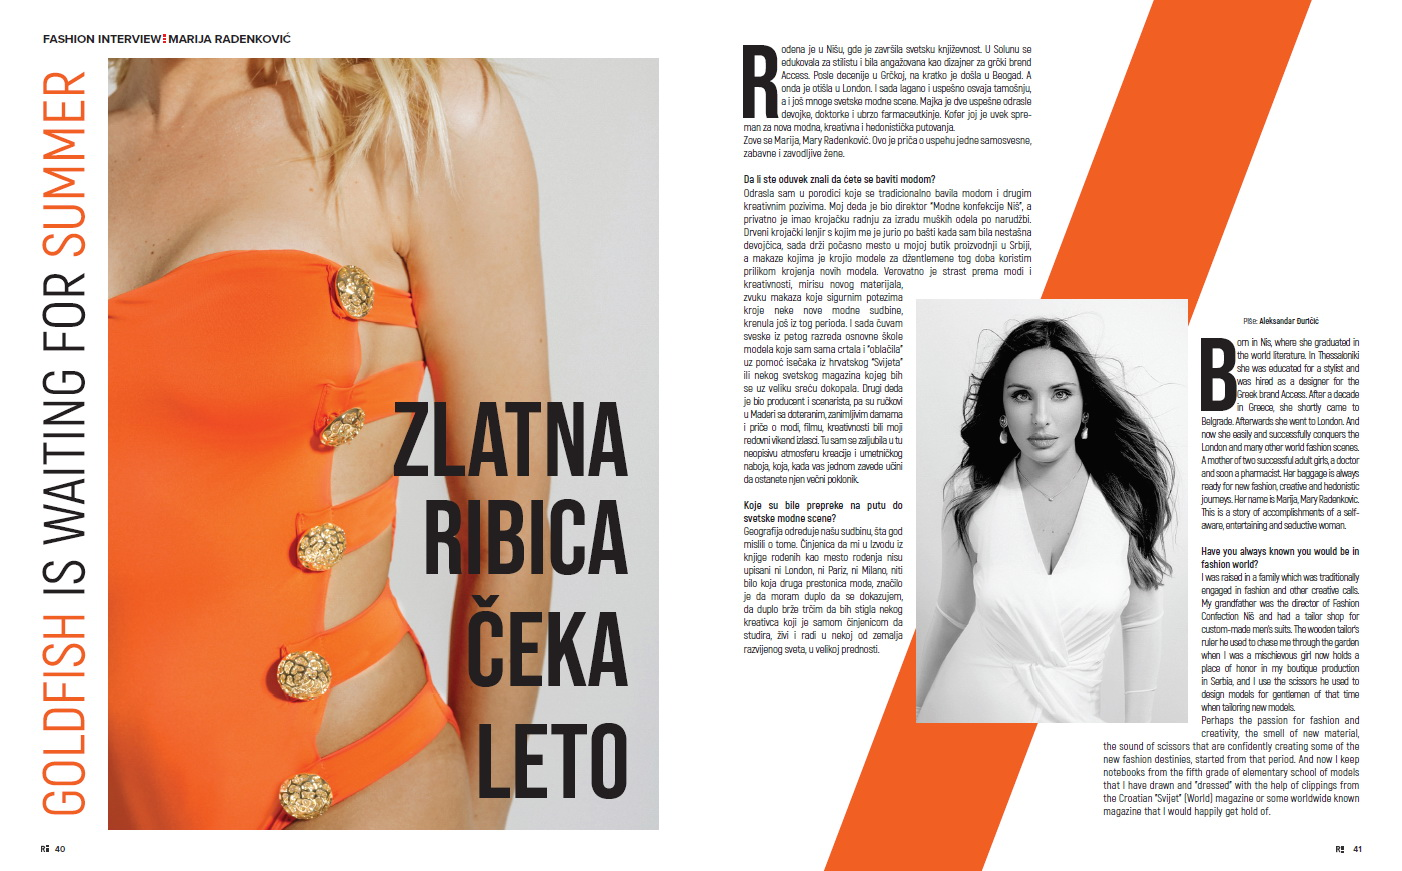 Lavishly Appointed in Reminder magazine - Fashion interview with Mary Radenkovic